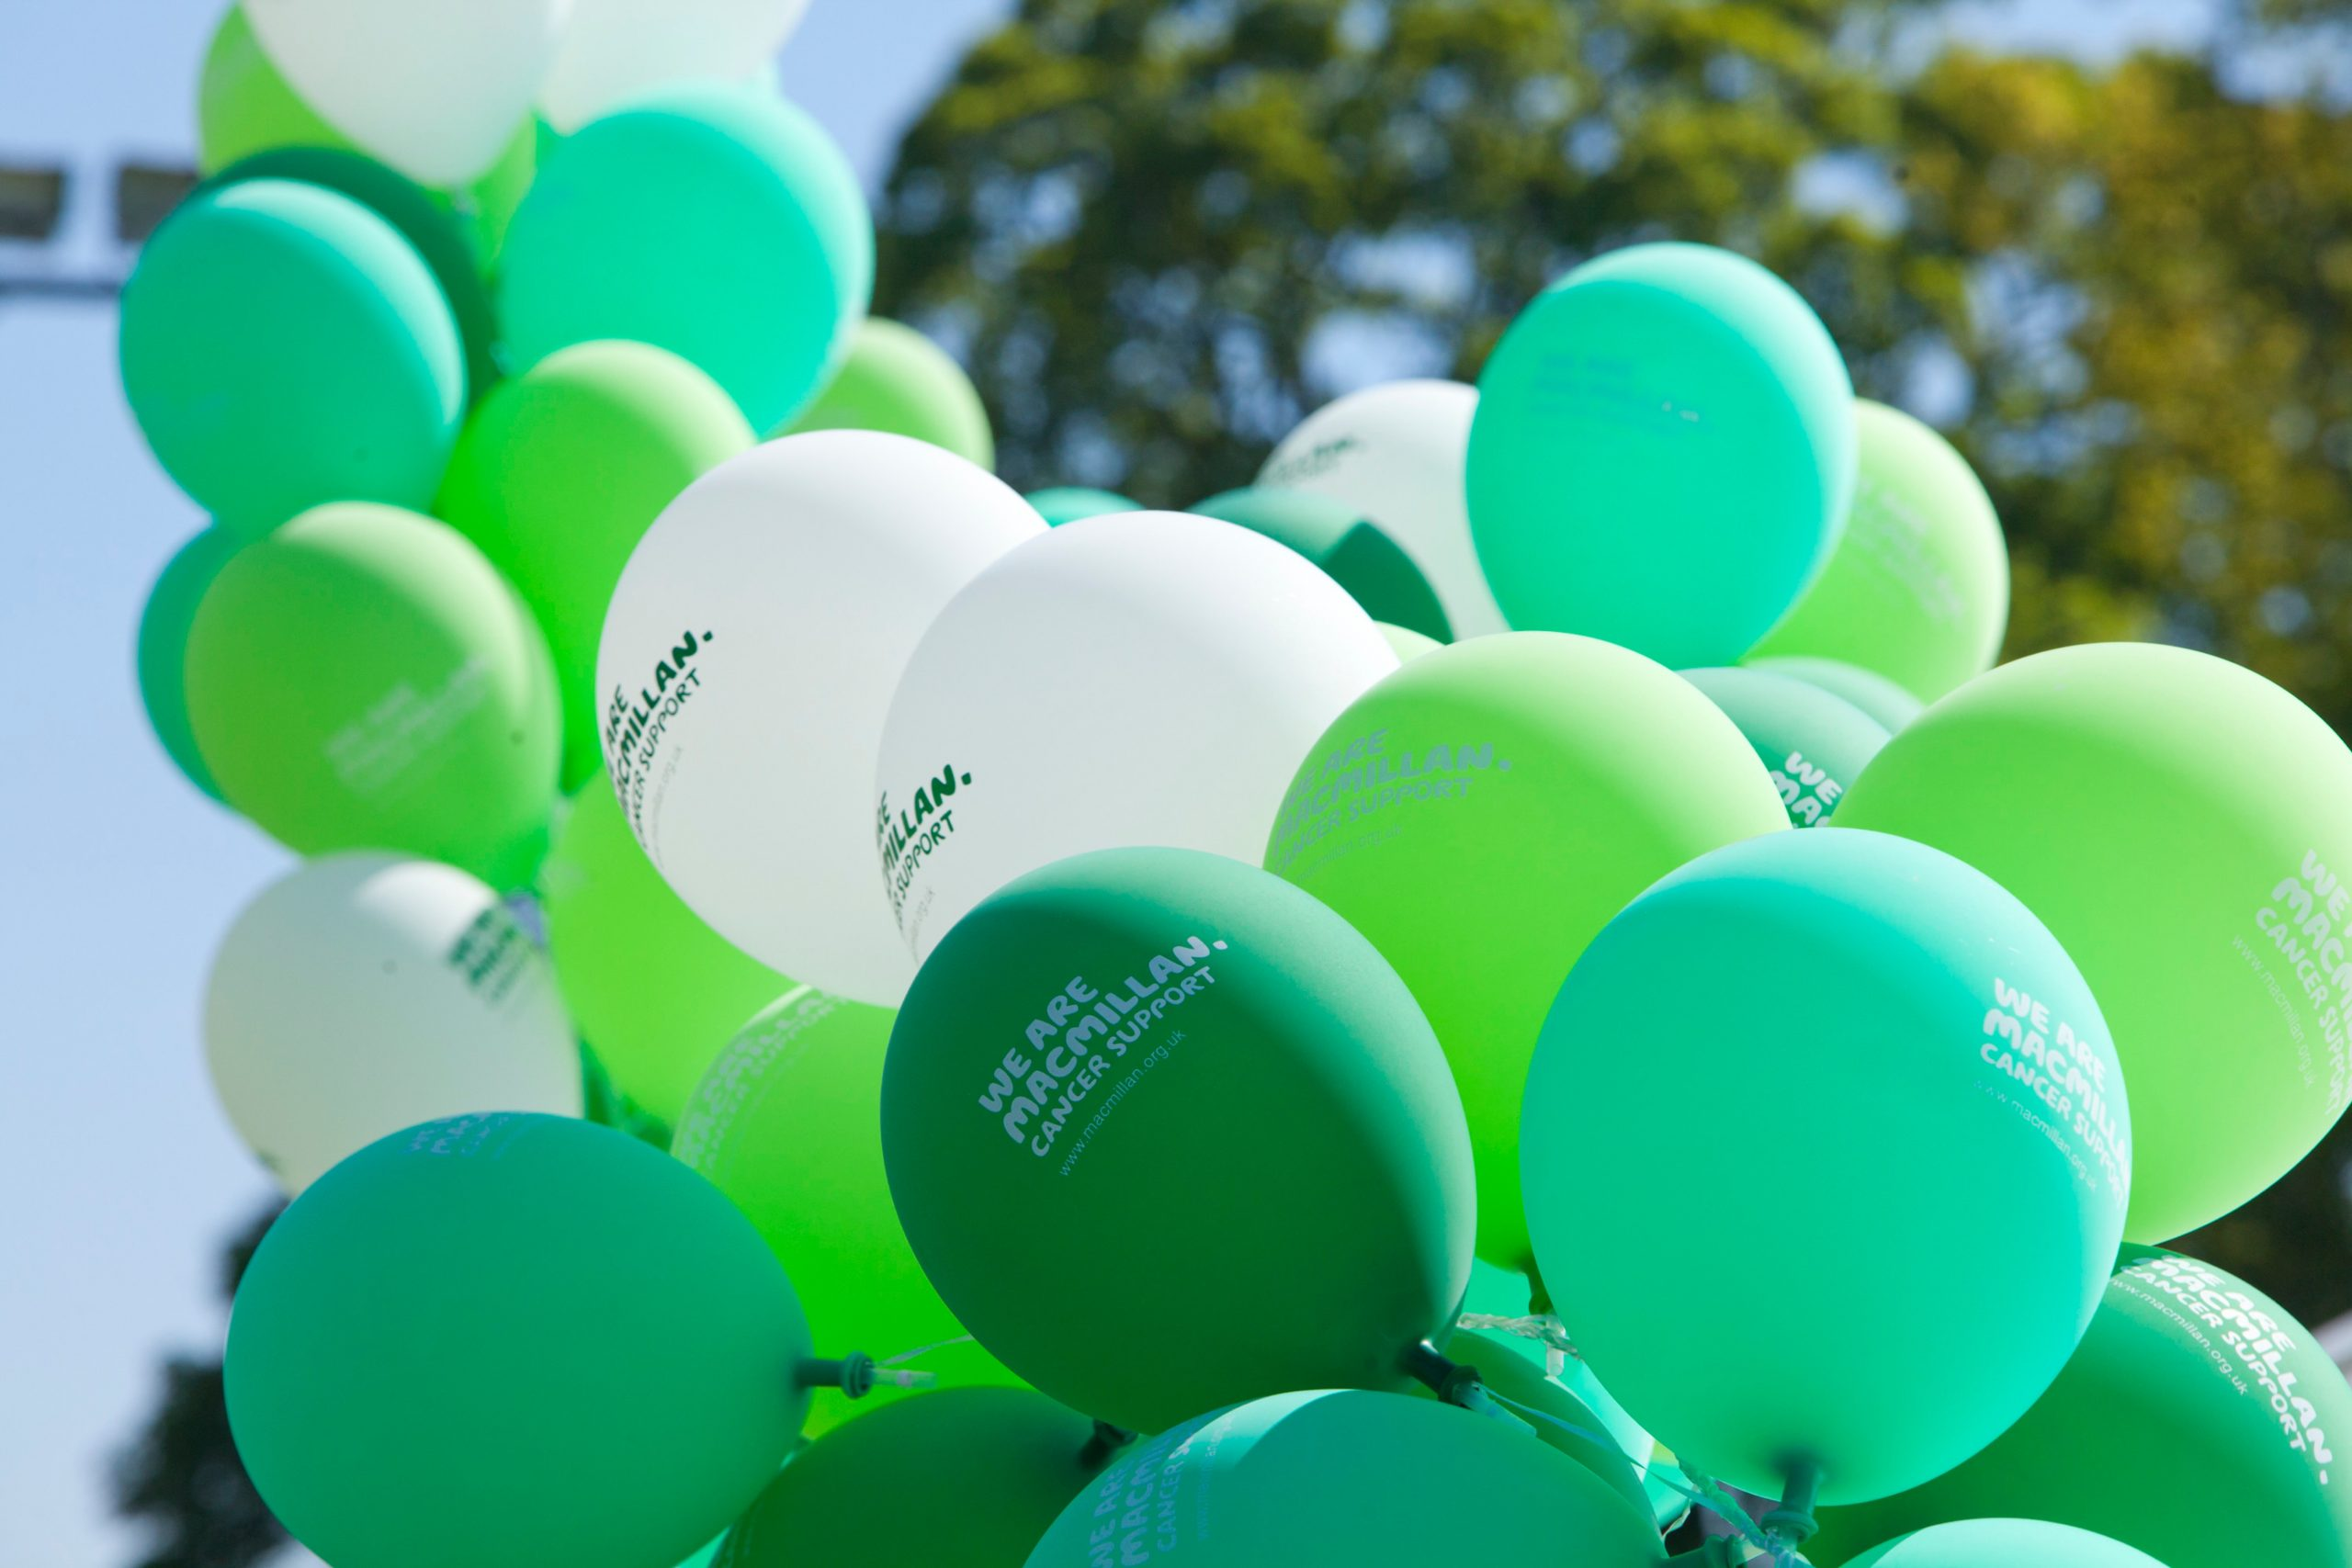 Cyclists from Marshalls take on gruelling challenge for Macmillan